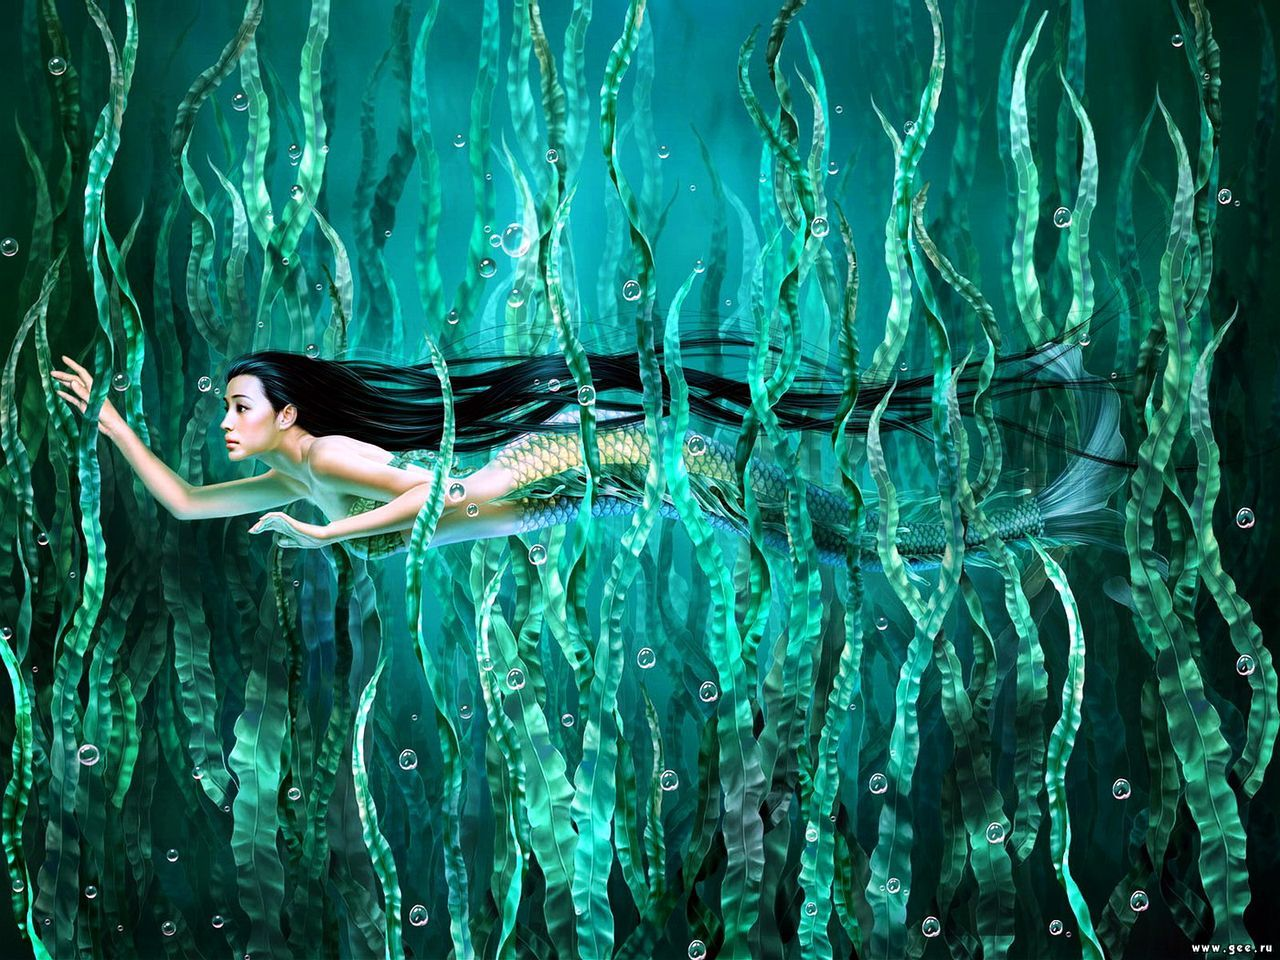 mermaid-and-algae